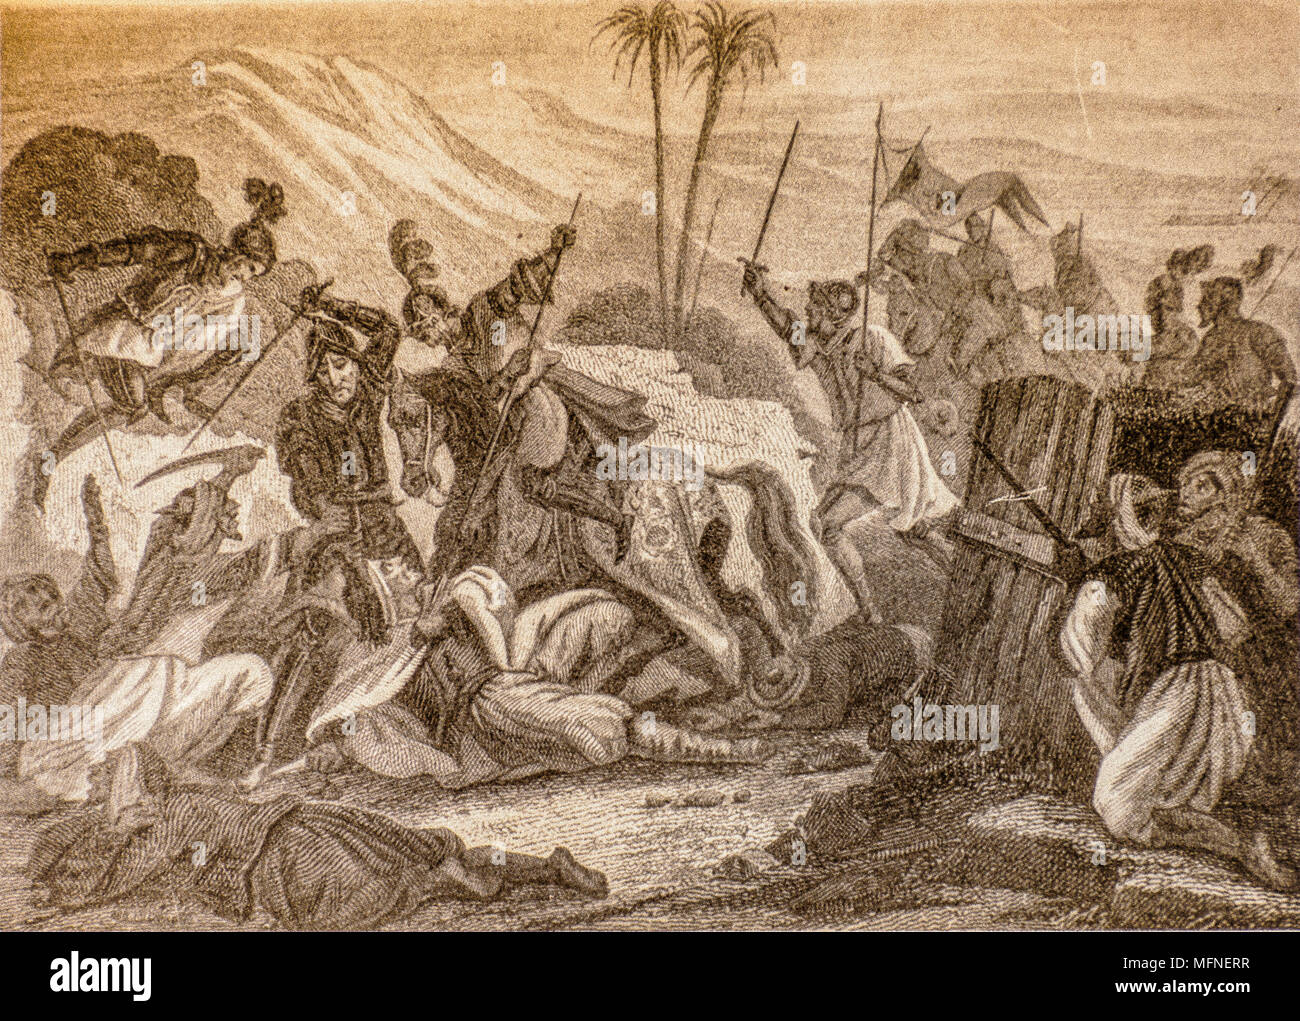 Clashes of arms between Barbareschi pirates and Spanish troops - Stock Image